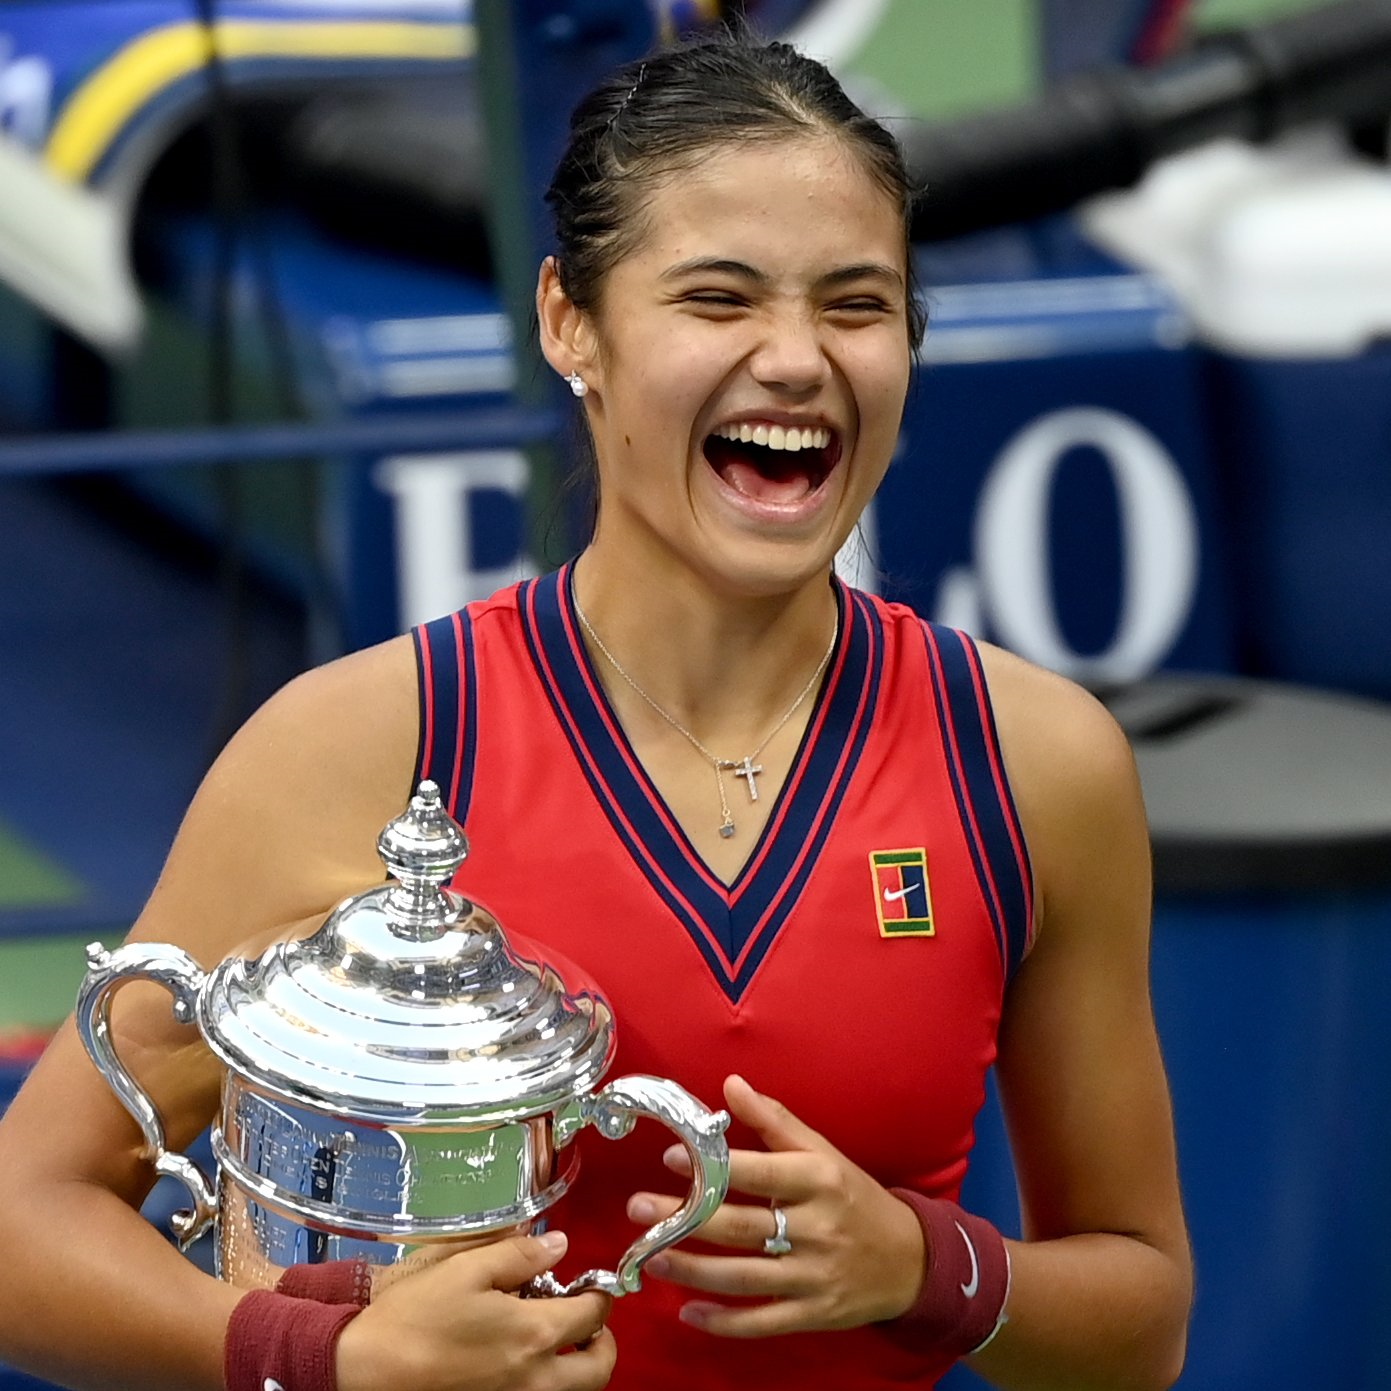 Emma this is what pure joy looks like The first British female winner at Flushing Meadows since Virginia Wade in 1968 - WTX News Breaking News, fashion & Culture from around the World - Daily News Briefings -Finance, Business, Politics & Sports